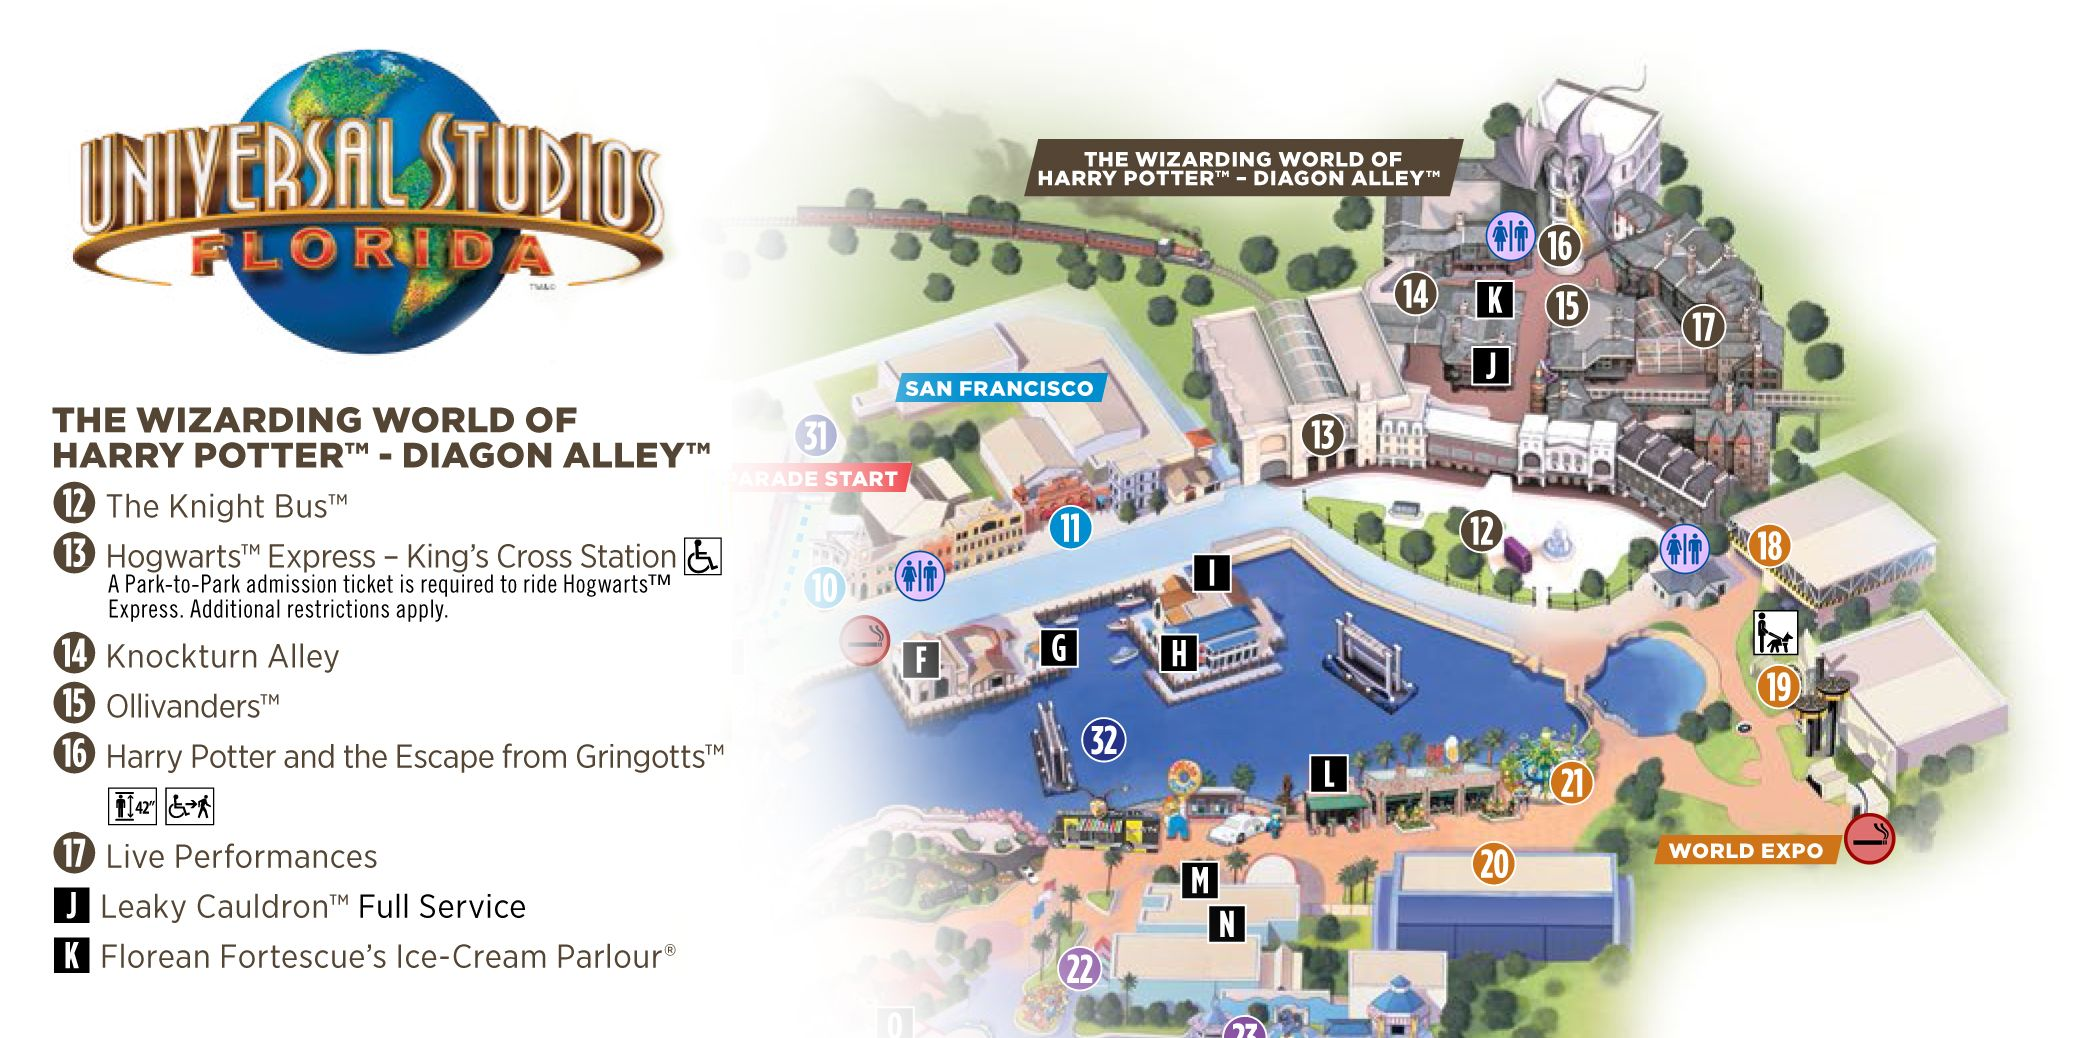 Harry Potter World Florida Map.Universal Studios Florida Diagon Alley Map Potter Party